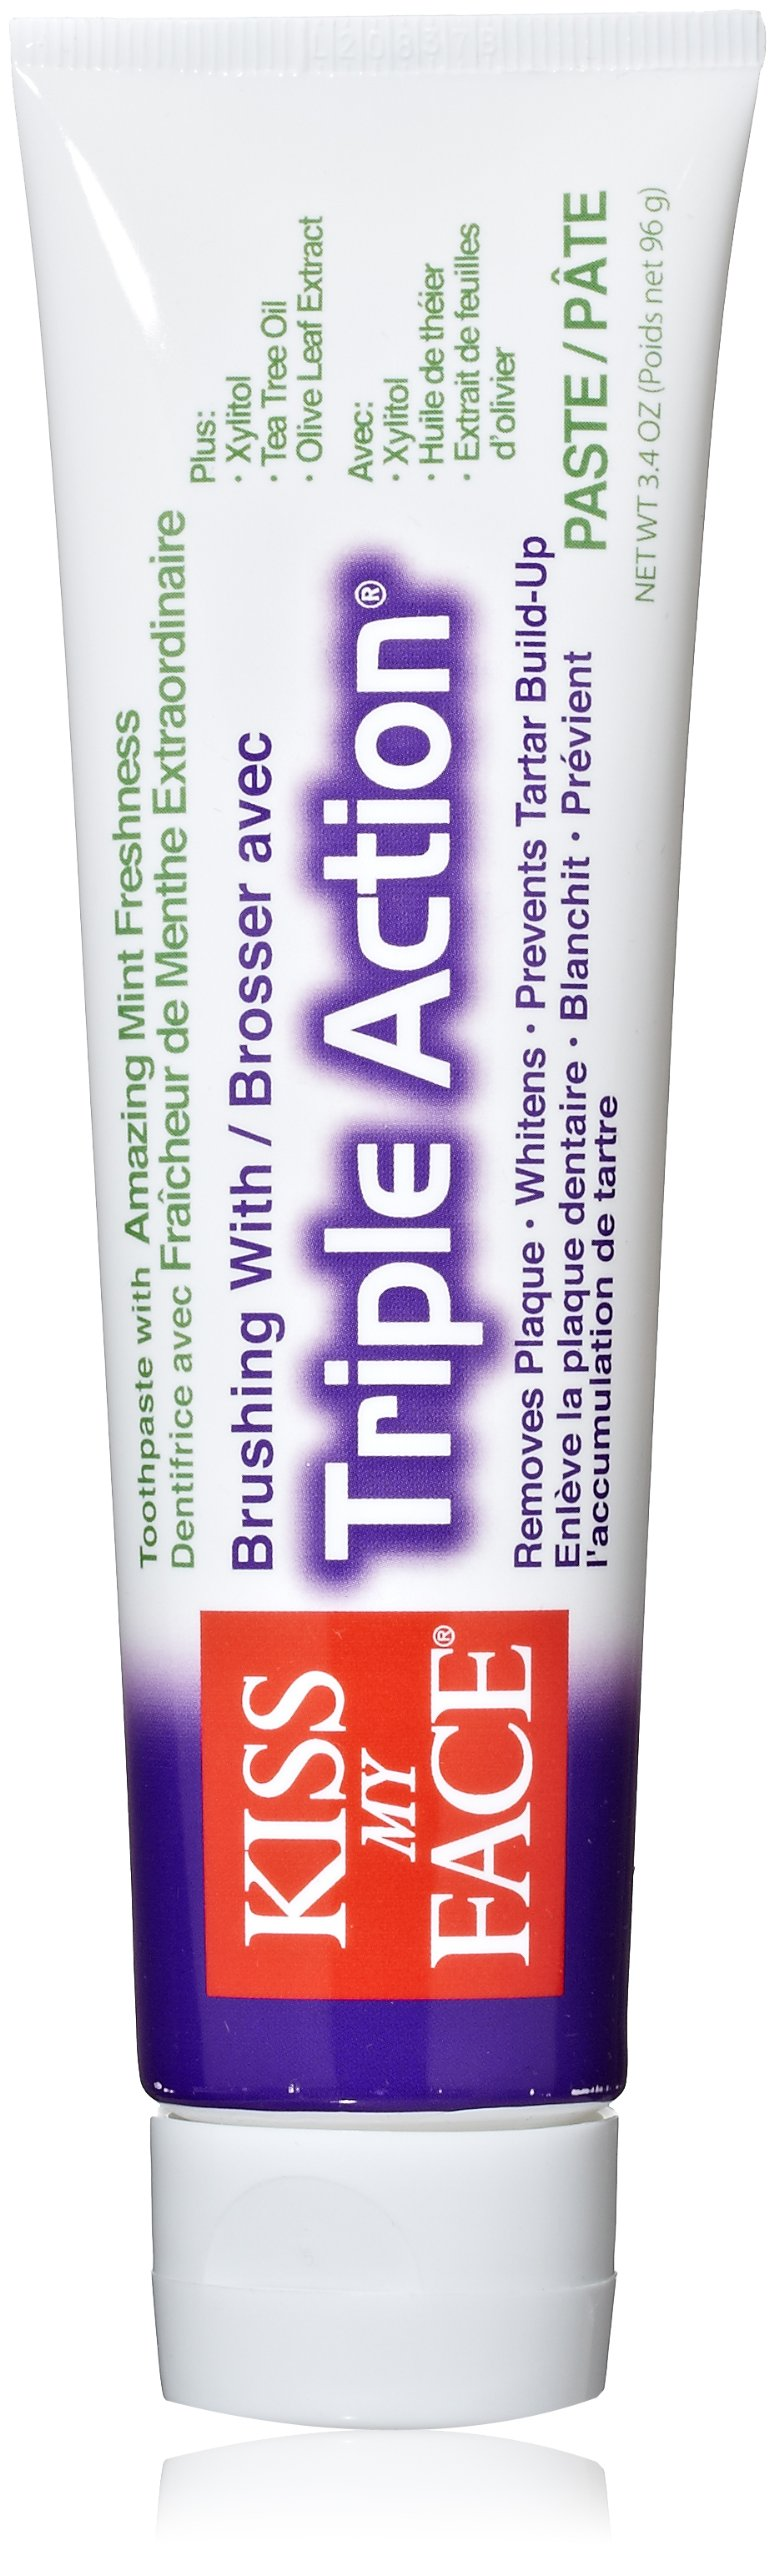 Kiss My Face Triple Action Fluoride Free Toothpaste, 3.4 Ounce